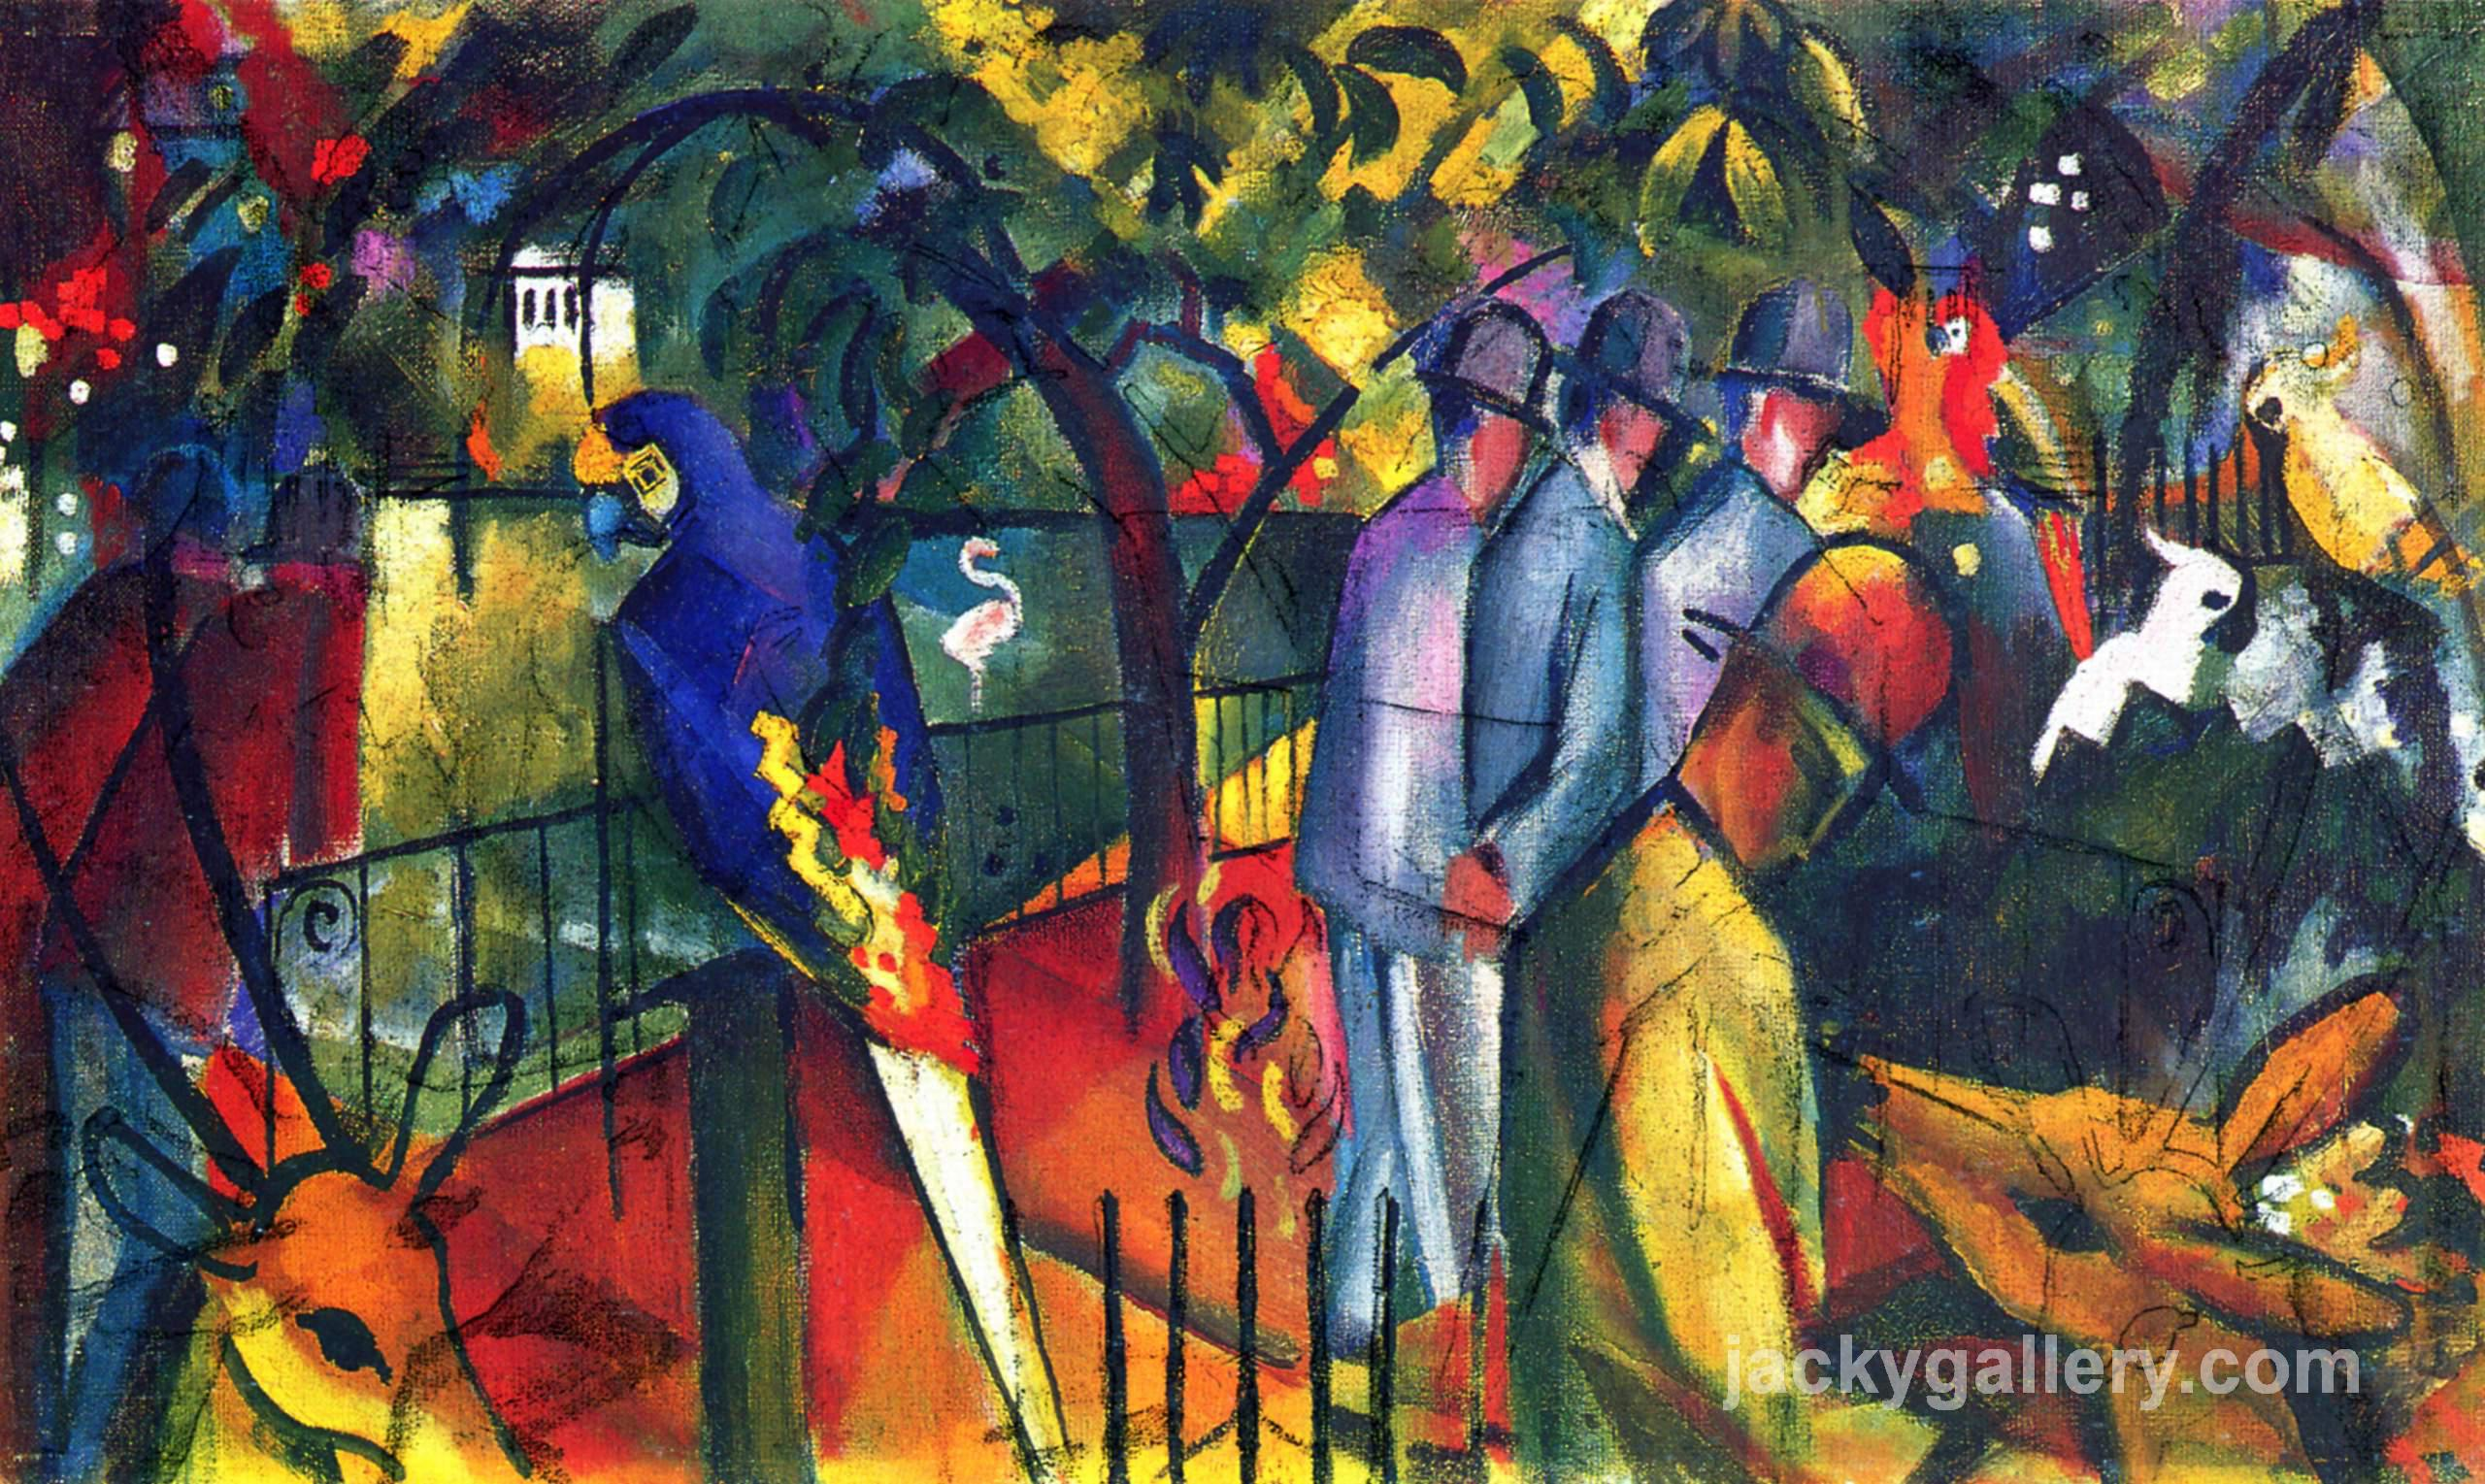 Zoological Garden I, August Macke painting